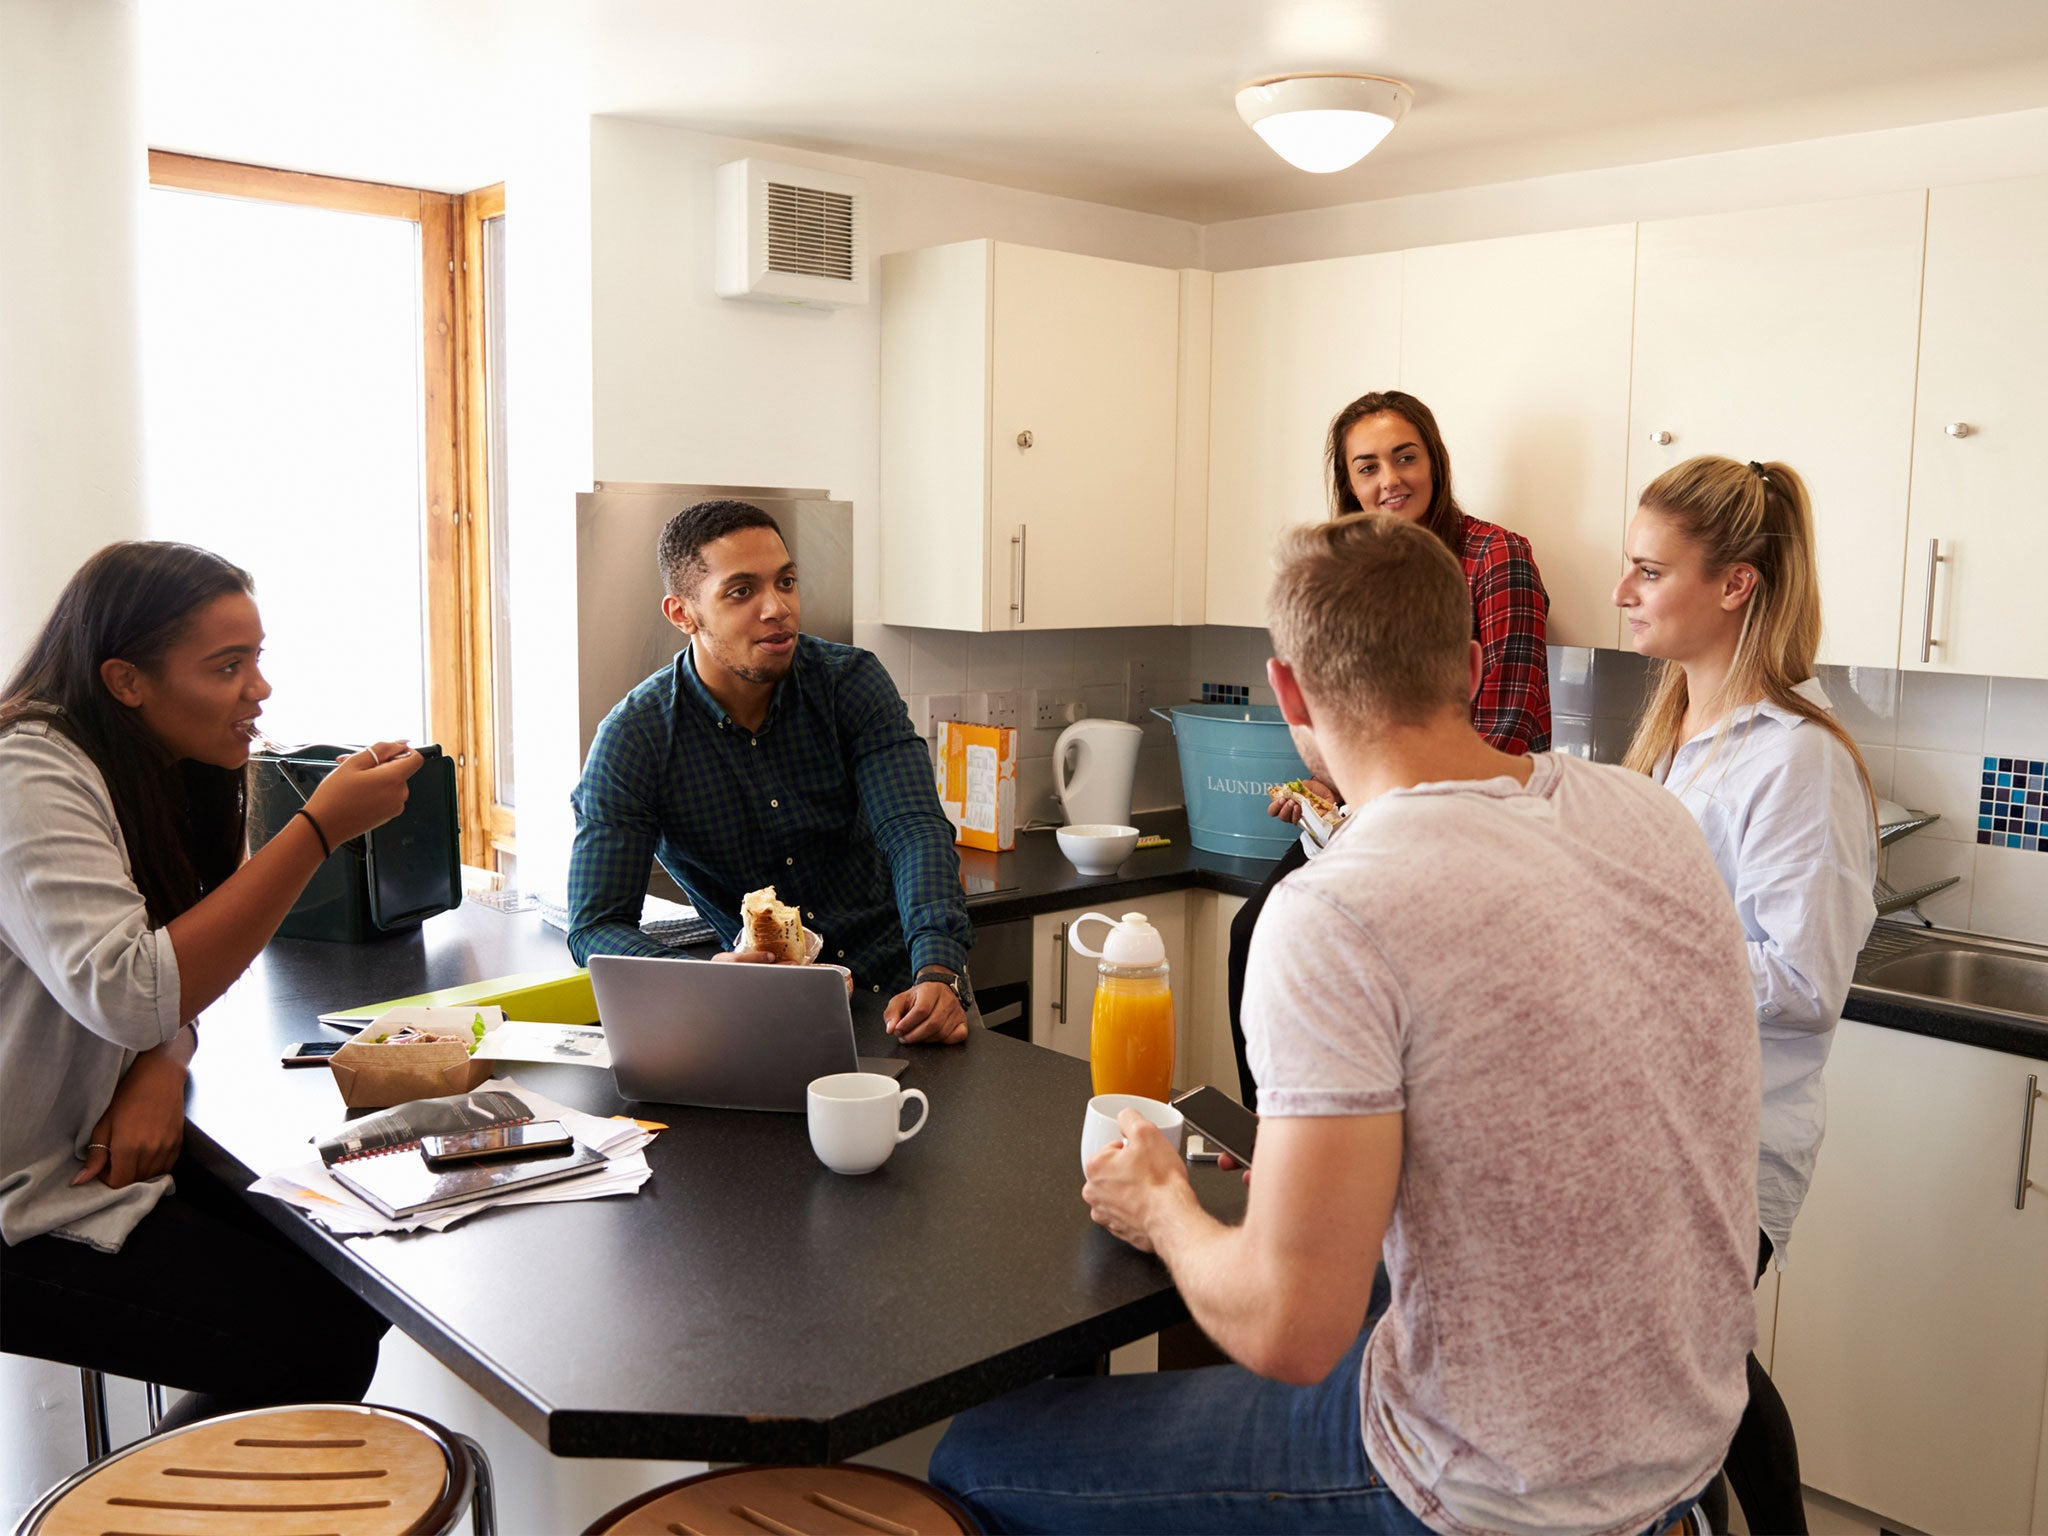 University accommodation: The pros and cons of living in halls | The Independentindependent_brand_ident_LOGOUntitled